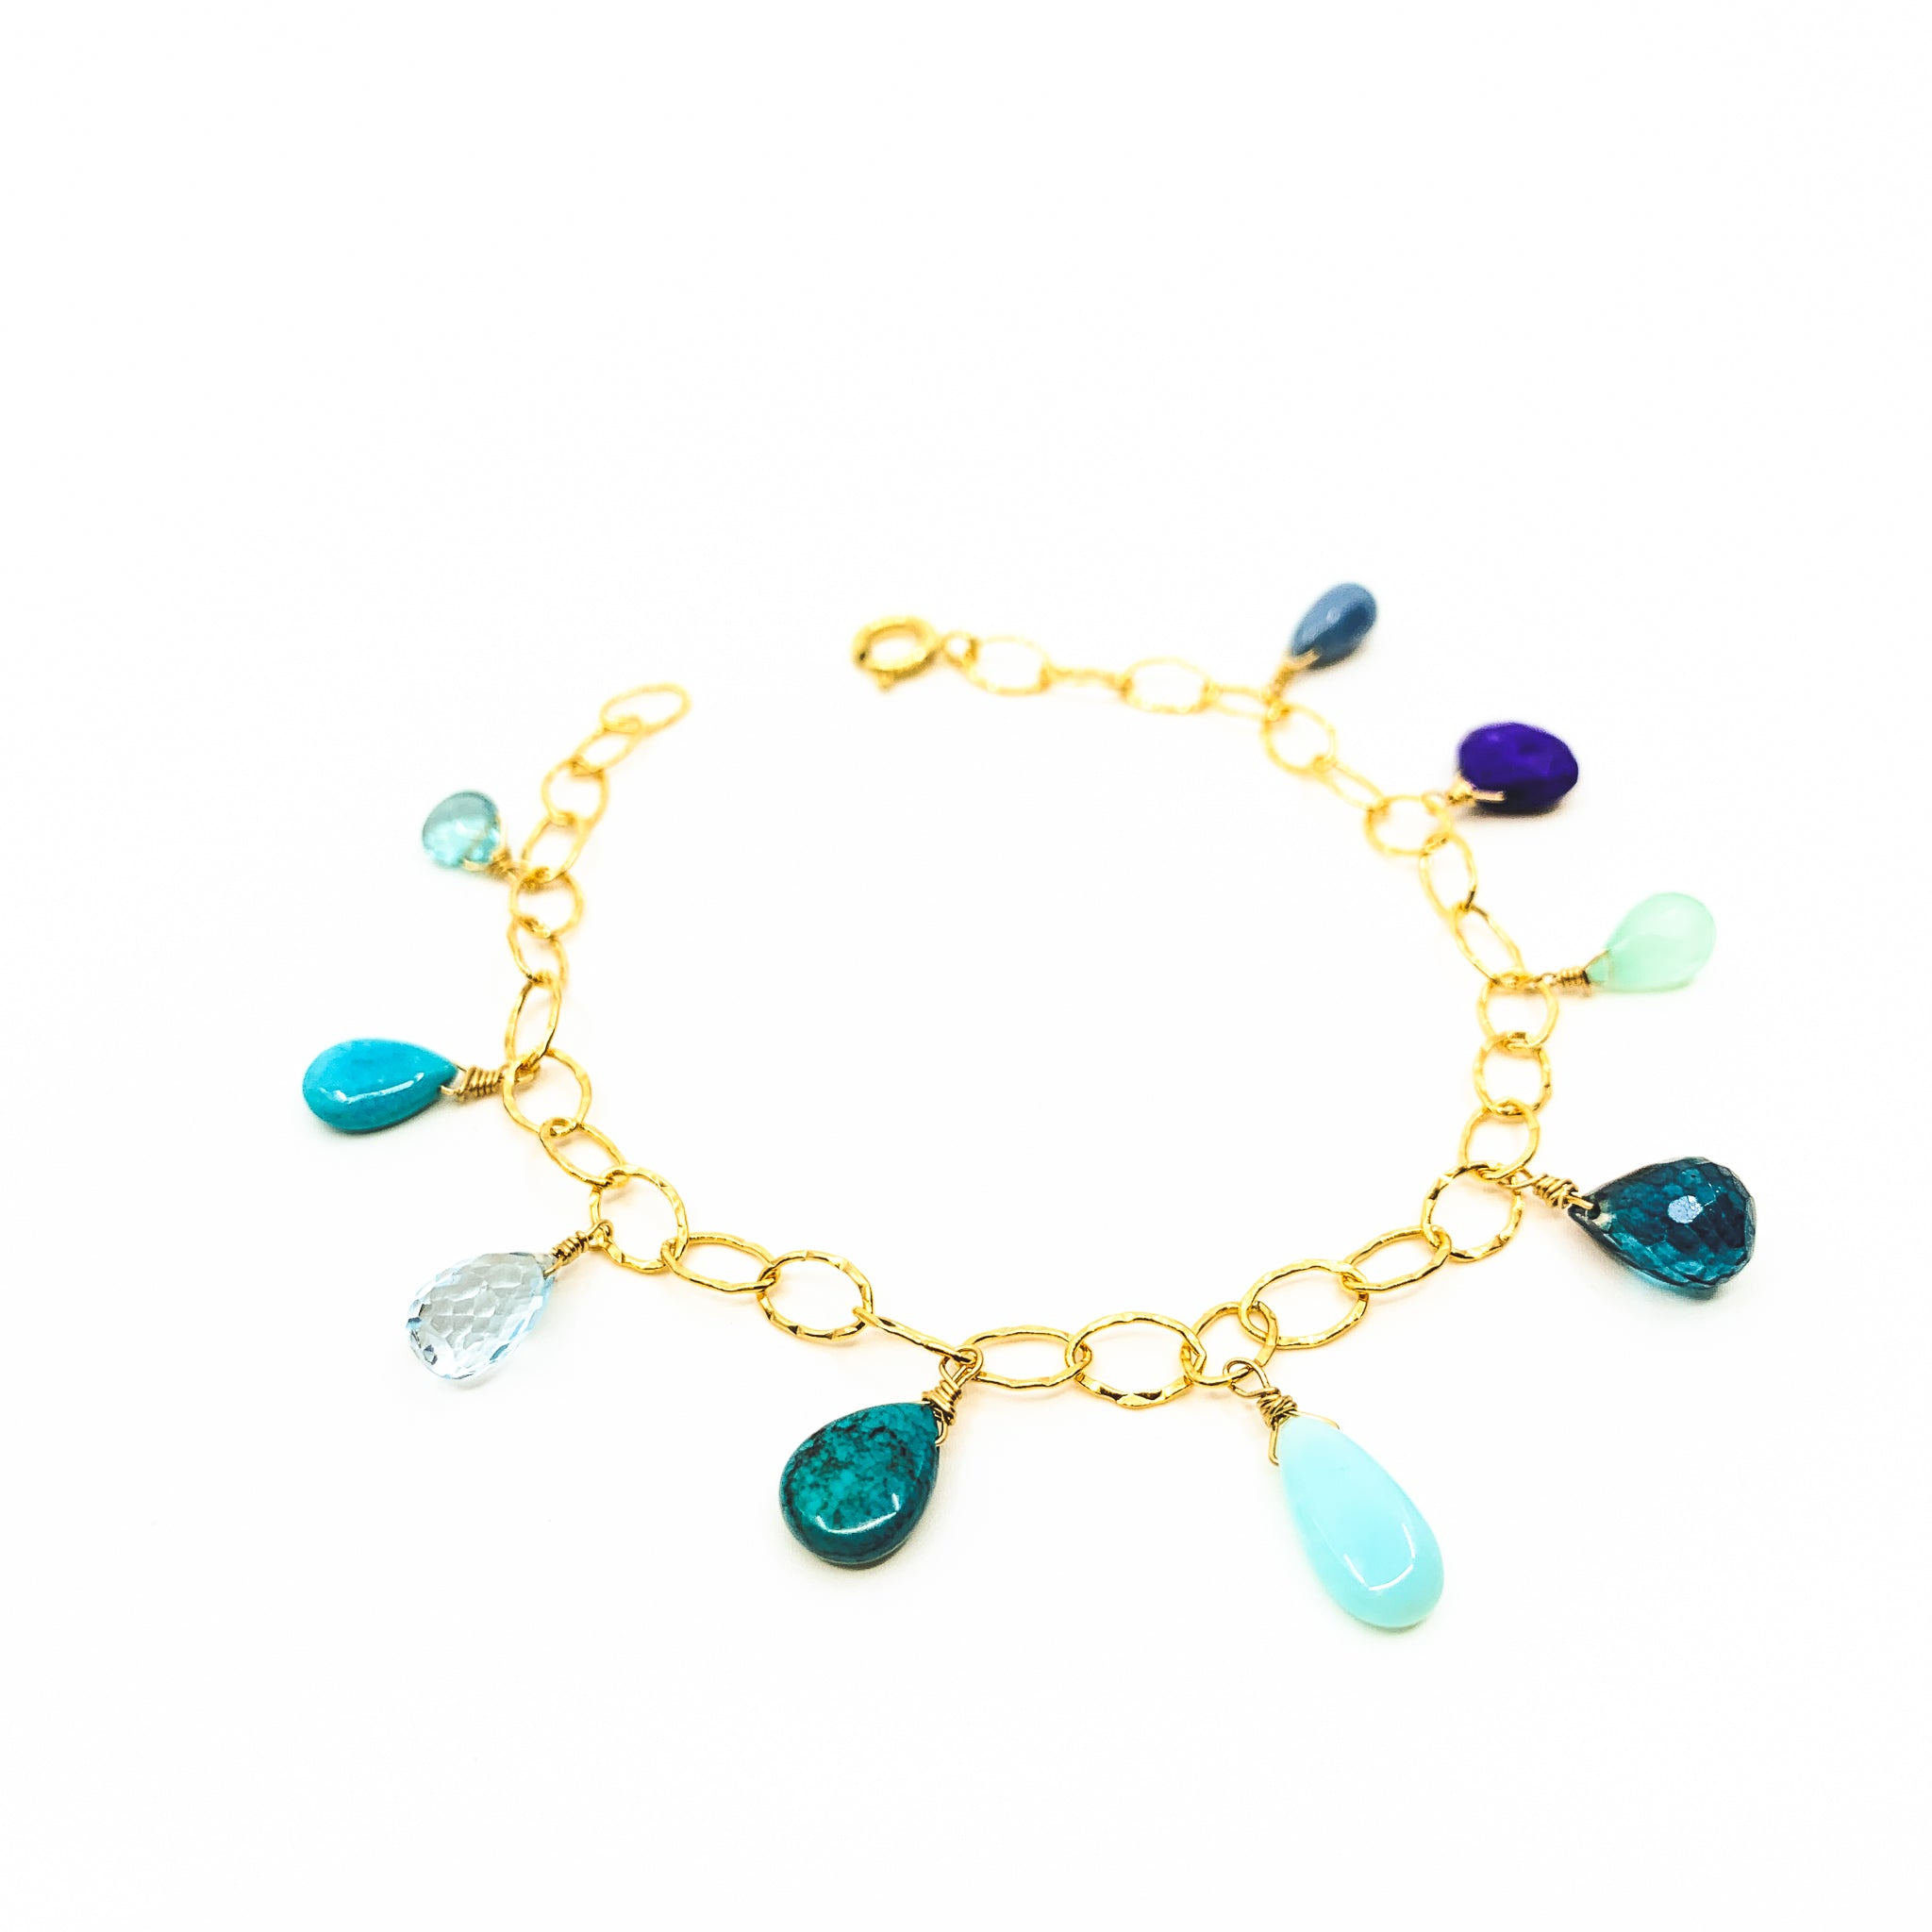 mixed blue gemstones gold charm bracelet by eve black jewelry made in hawaii  Edit alt text